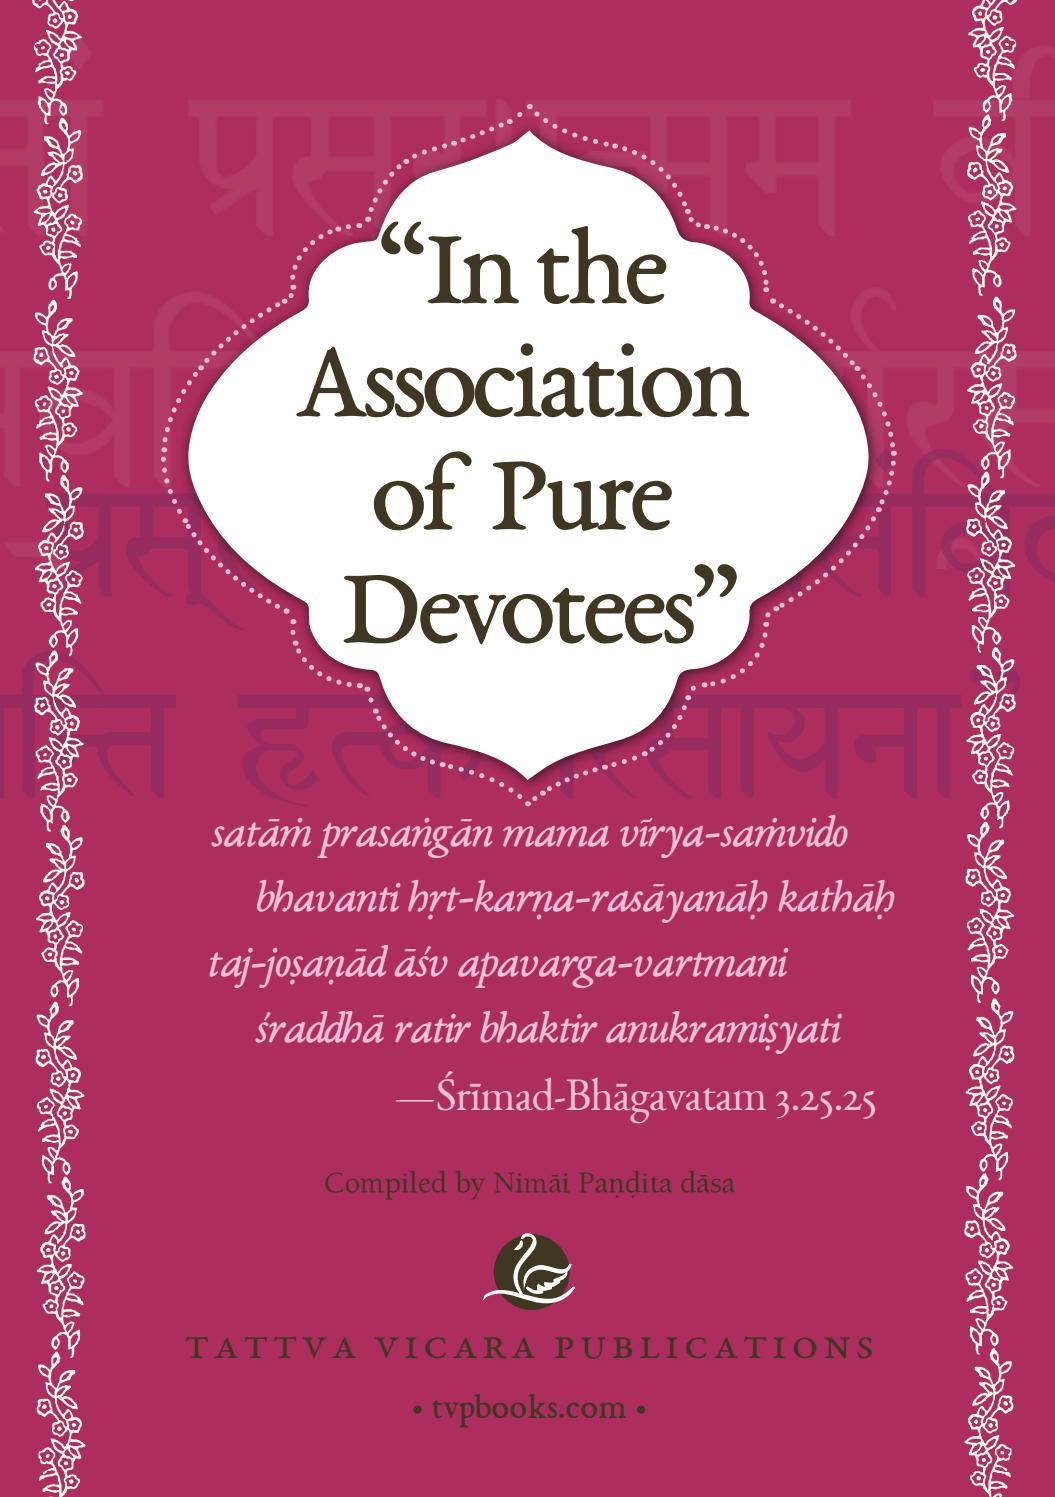 In the Association of Pure Devotees by Tattva Vicara